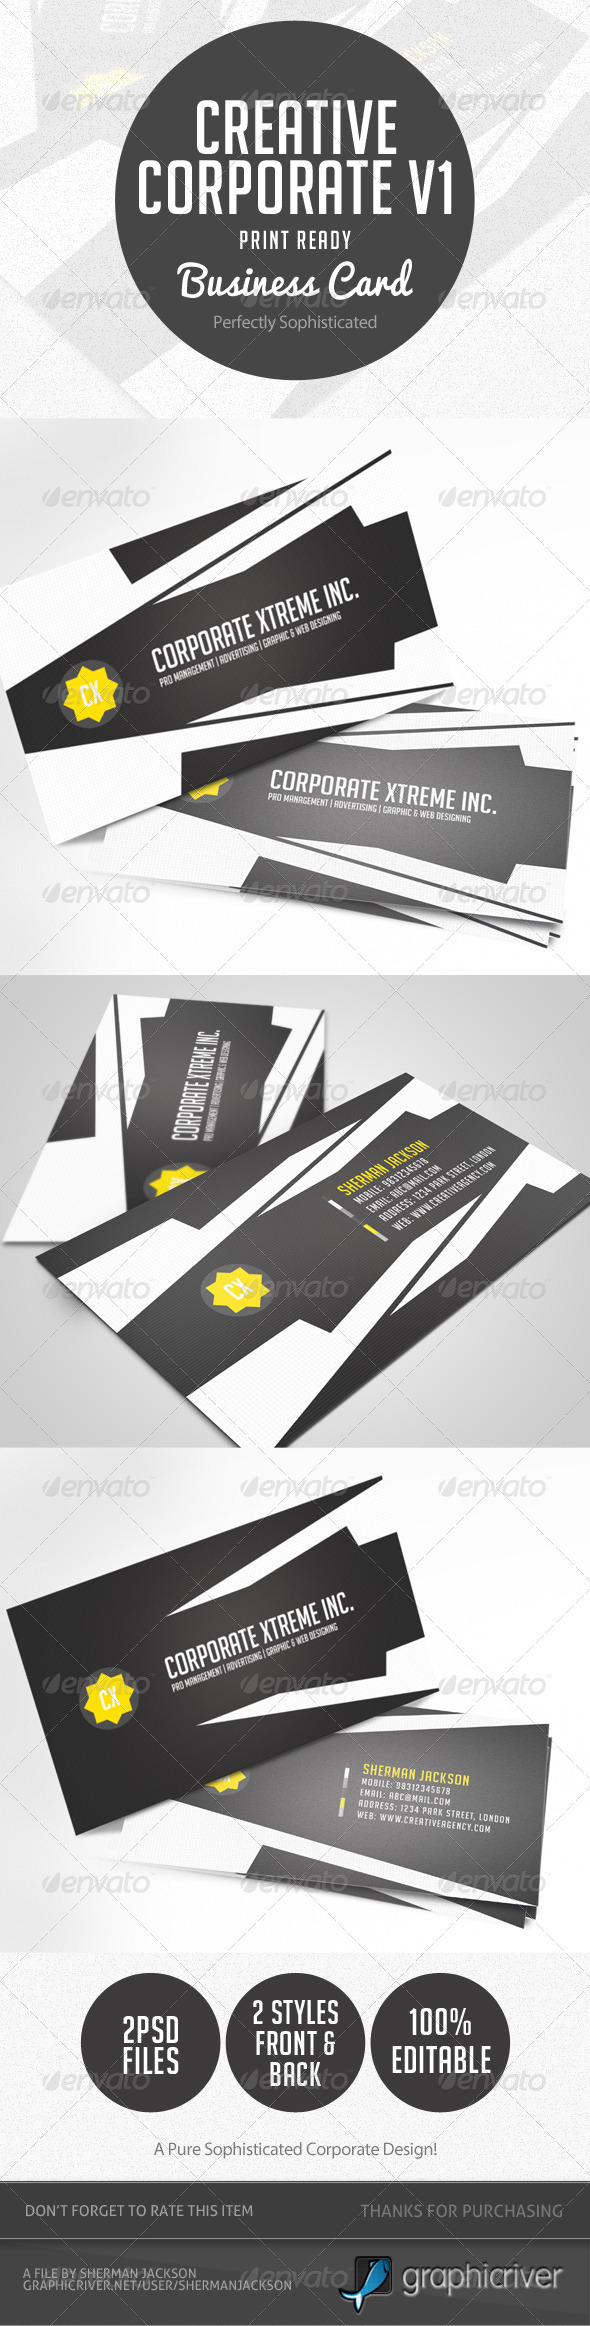 Creative Corporate Business Card V.1 - Corporate Business Cards